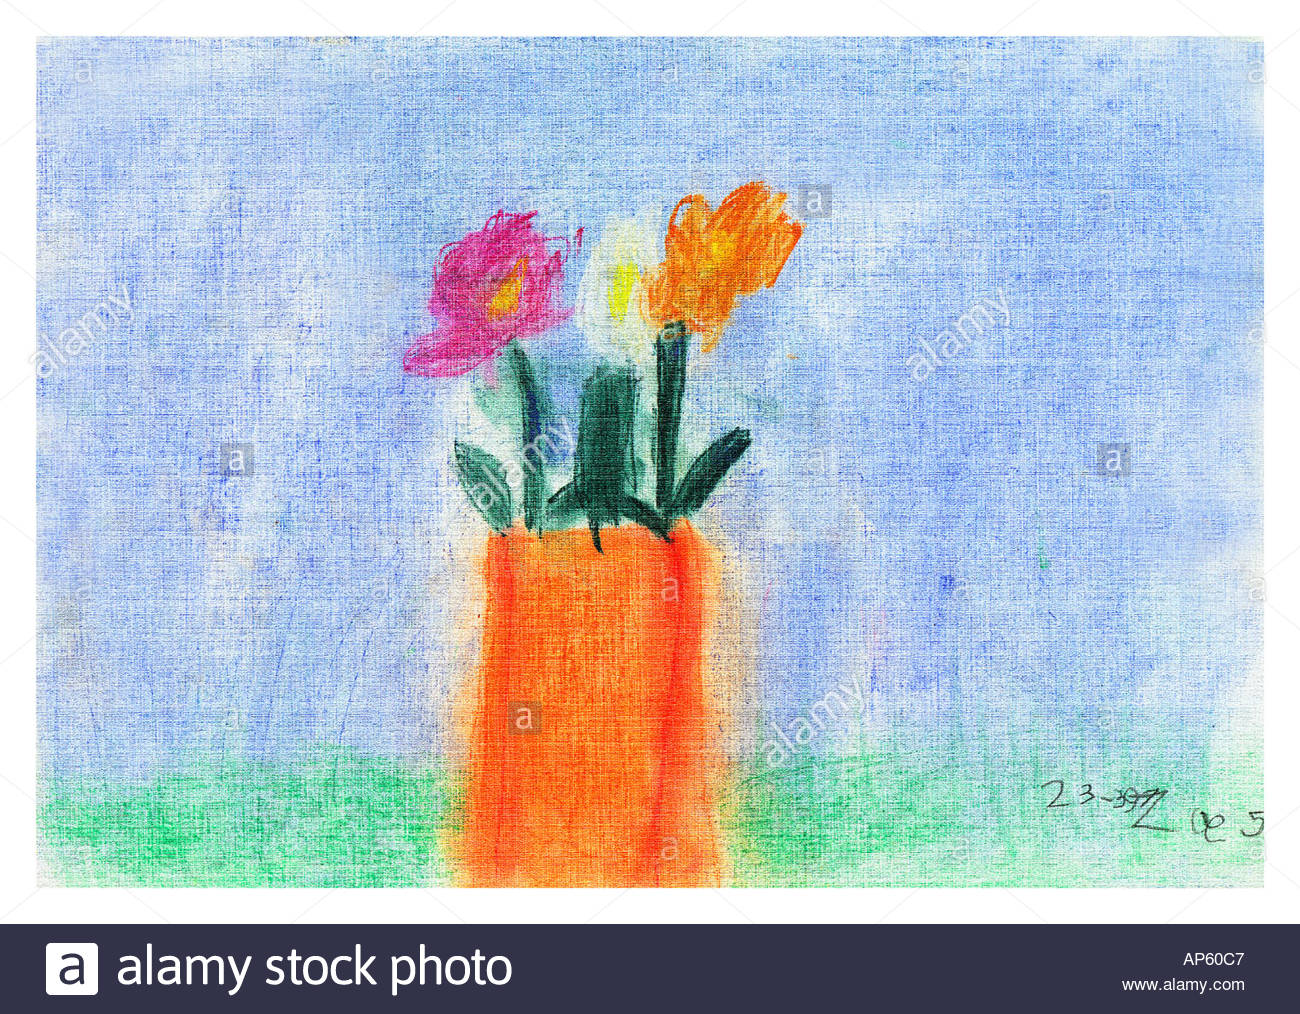 Childs illustration of flowers in a vase - Stock Image